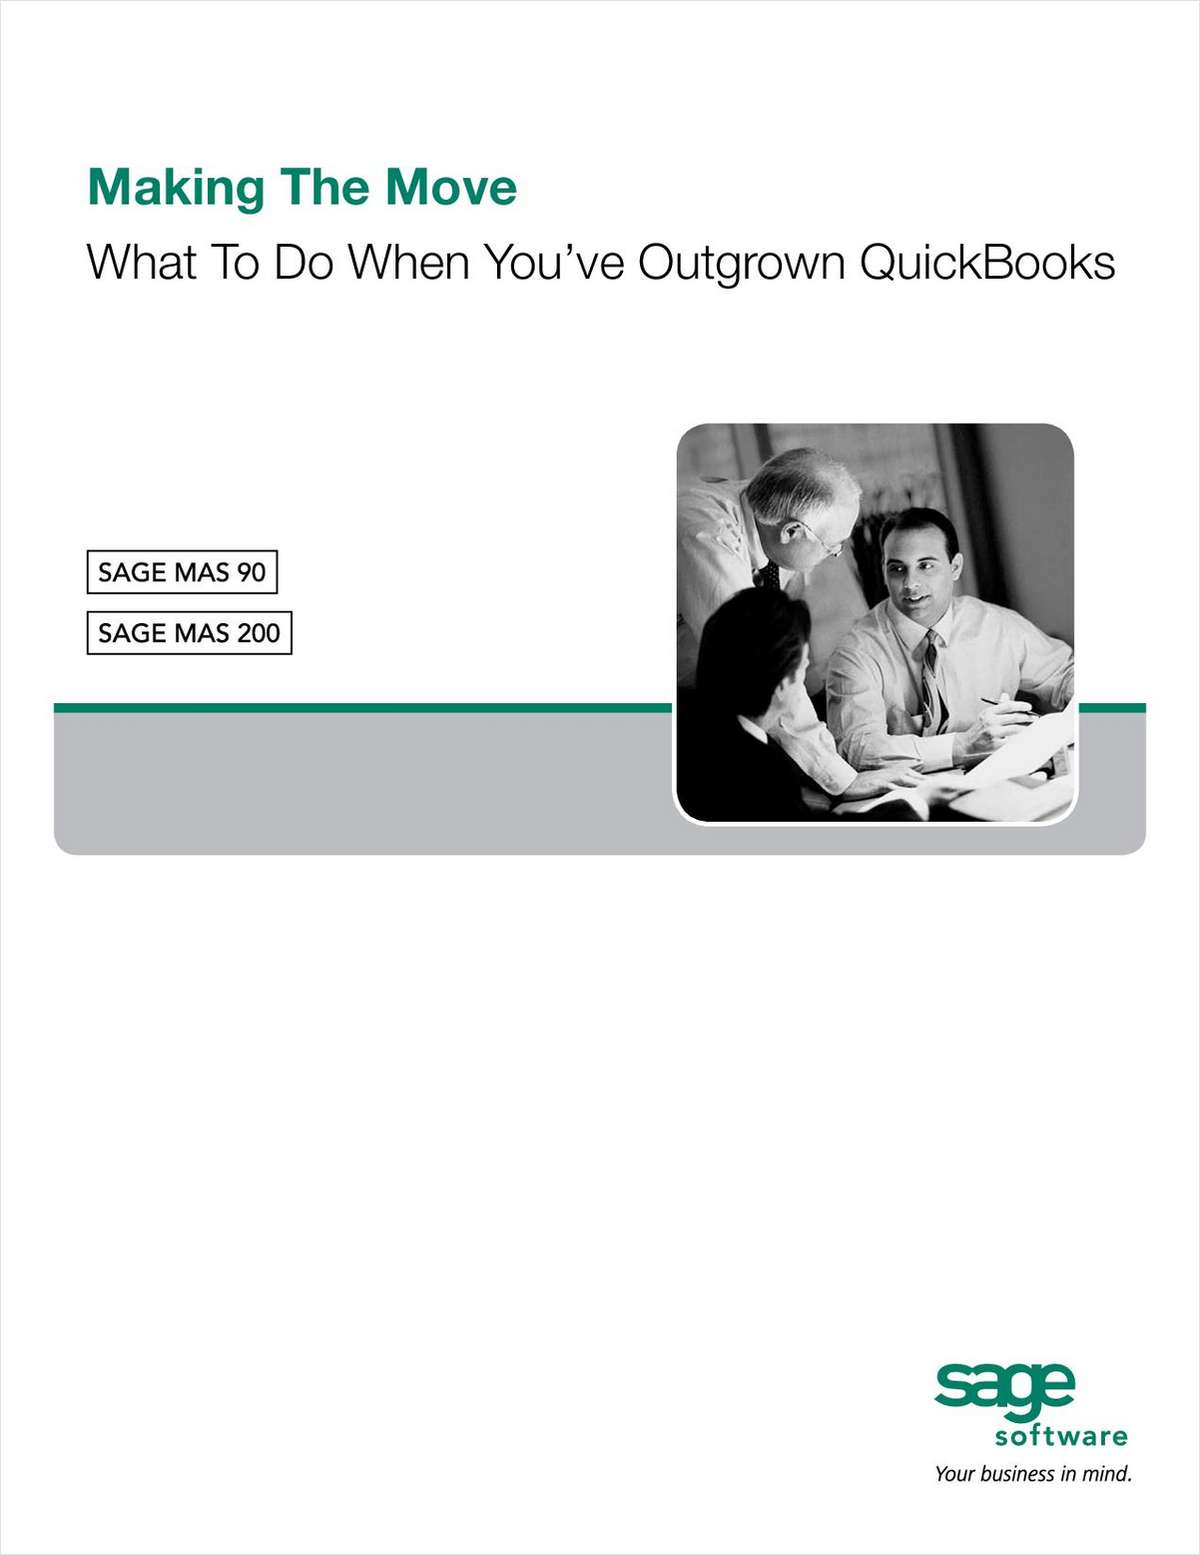 Making The Move - What to Do When You've Outgrown QuickBooks